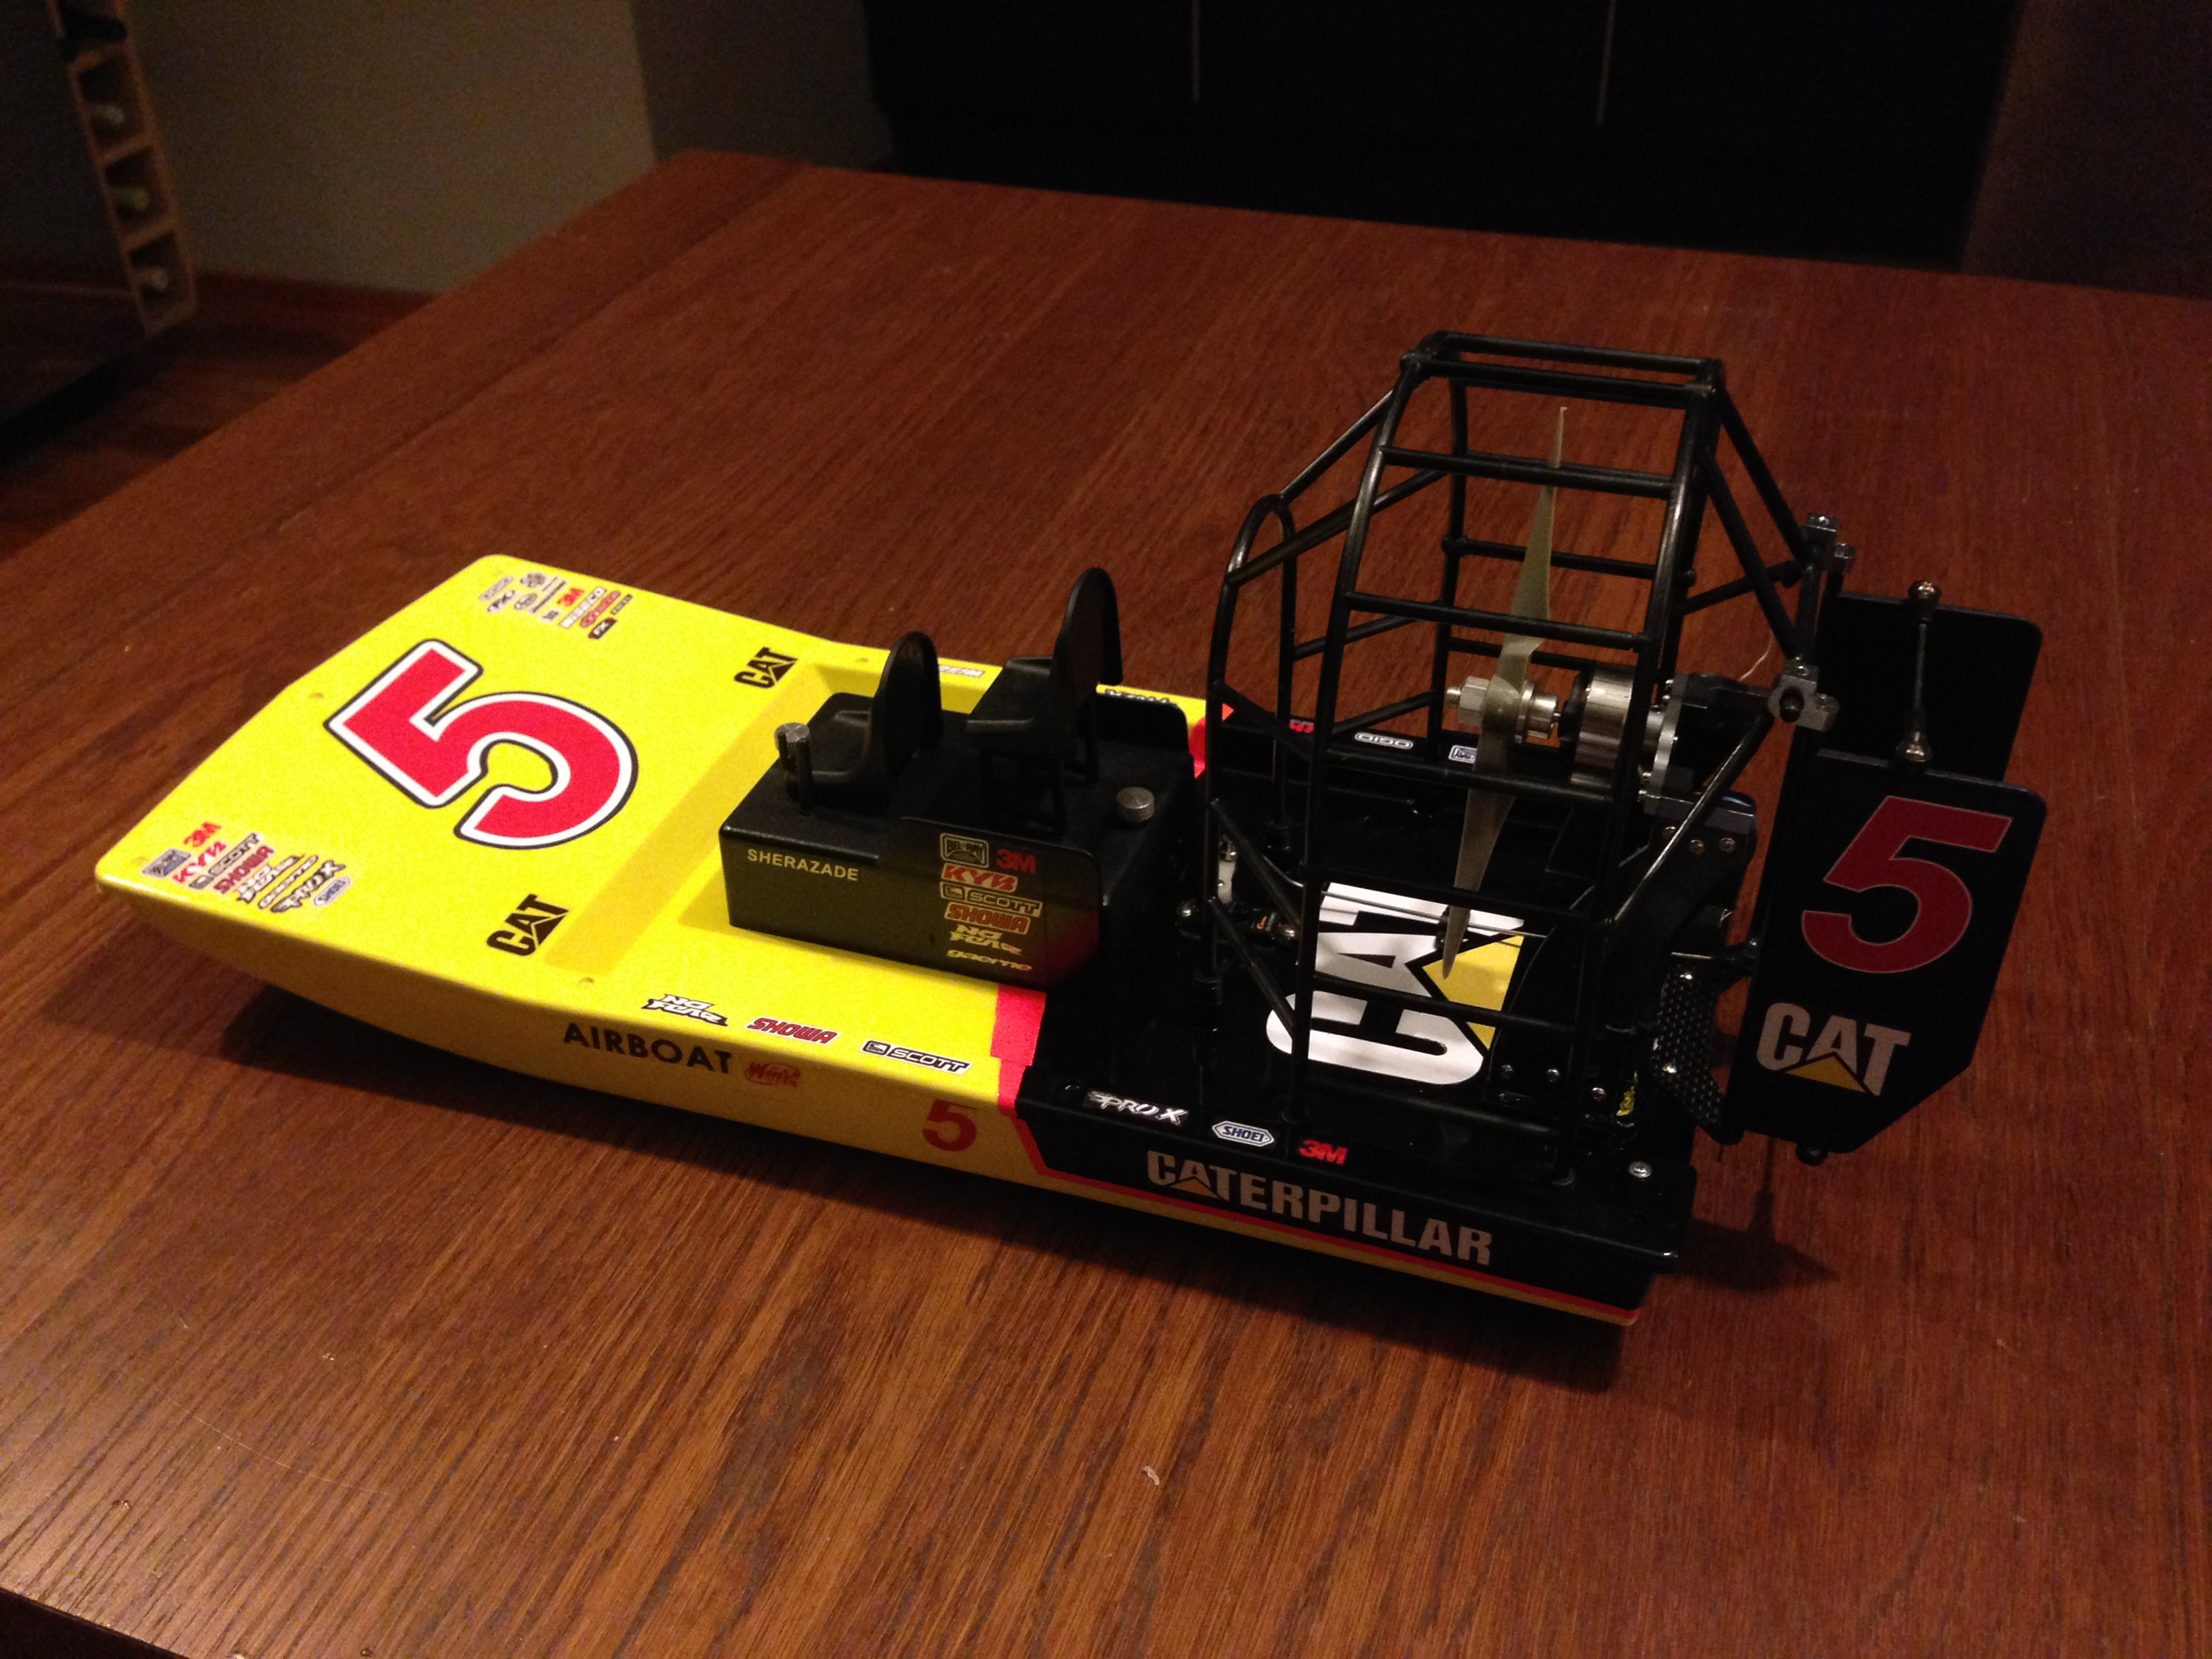 Hobbyking swamp dawg air boat arr no file name sciox Image collections